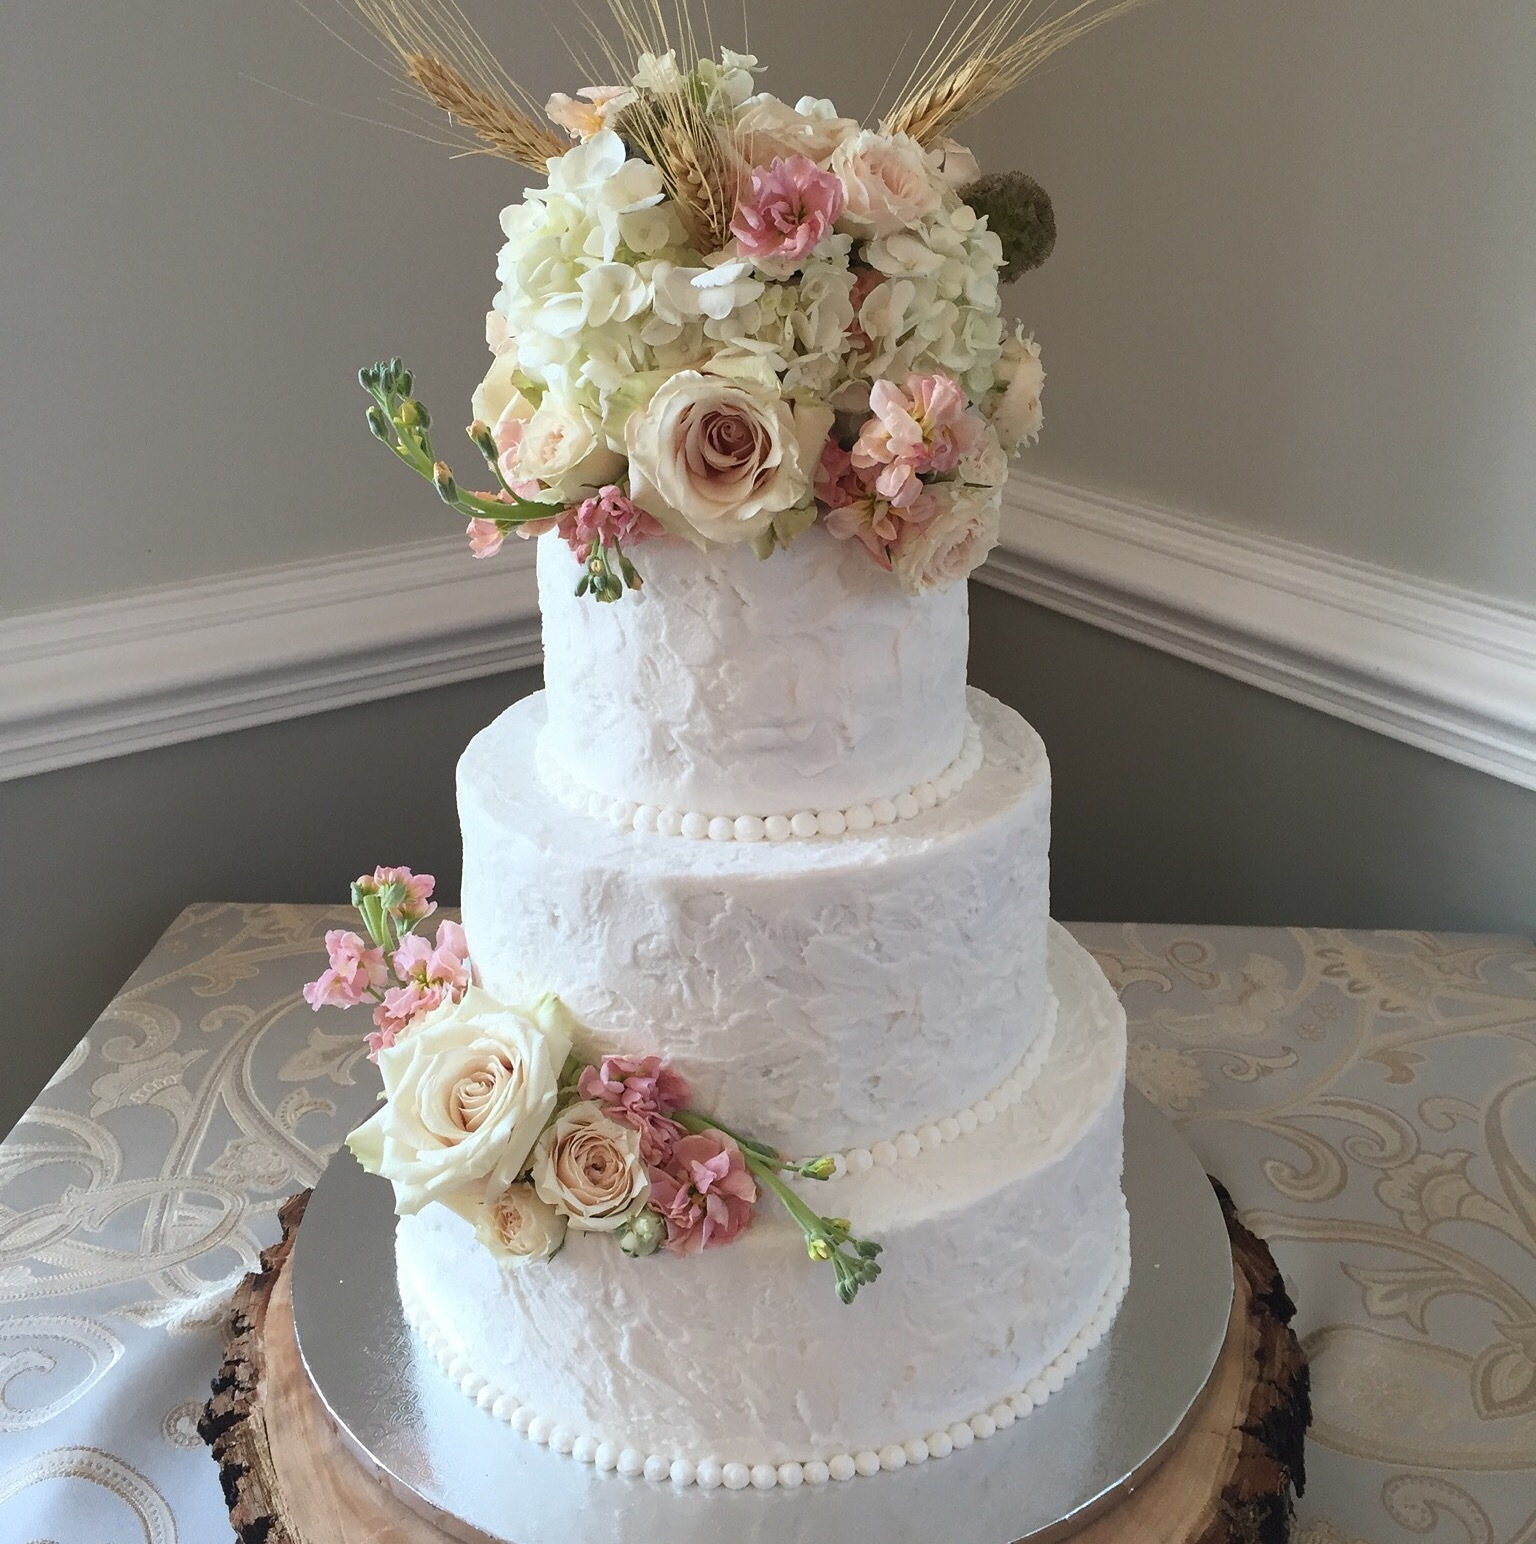 Rustic buttercream and fresh flower topper